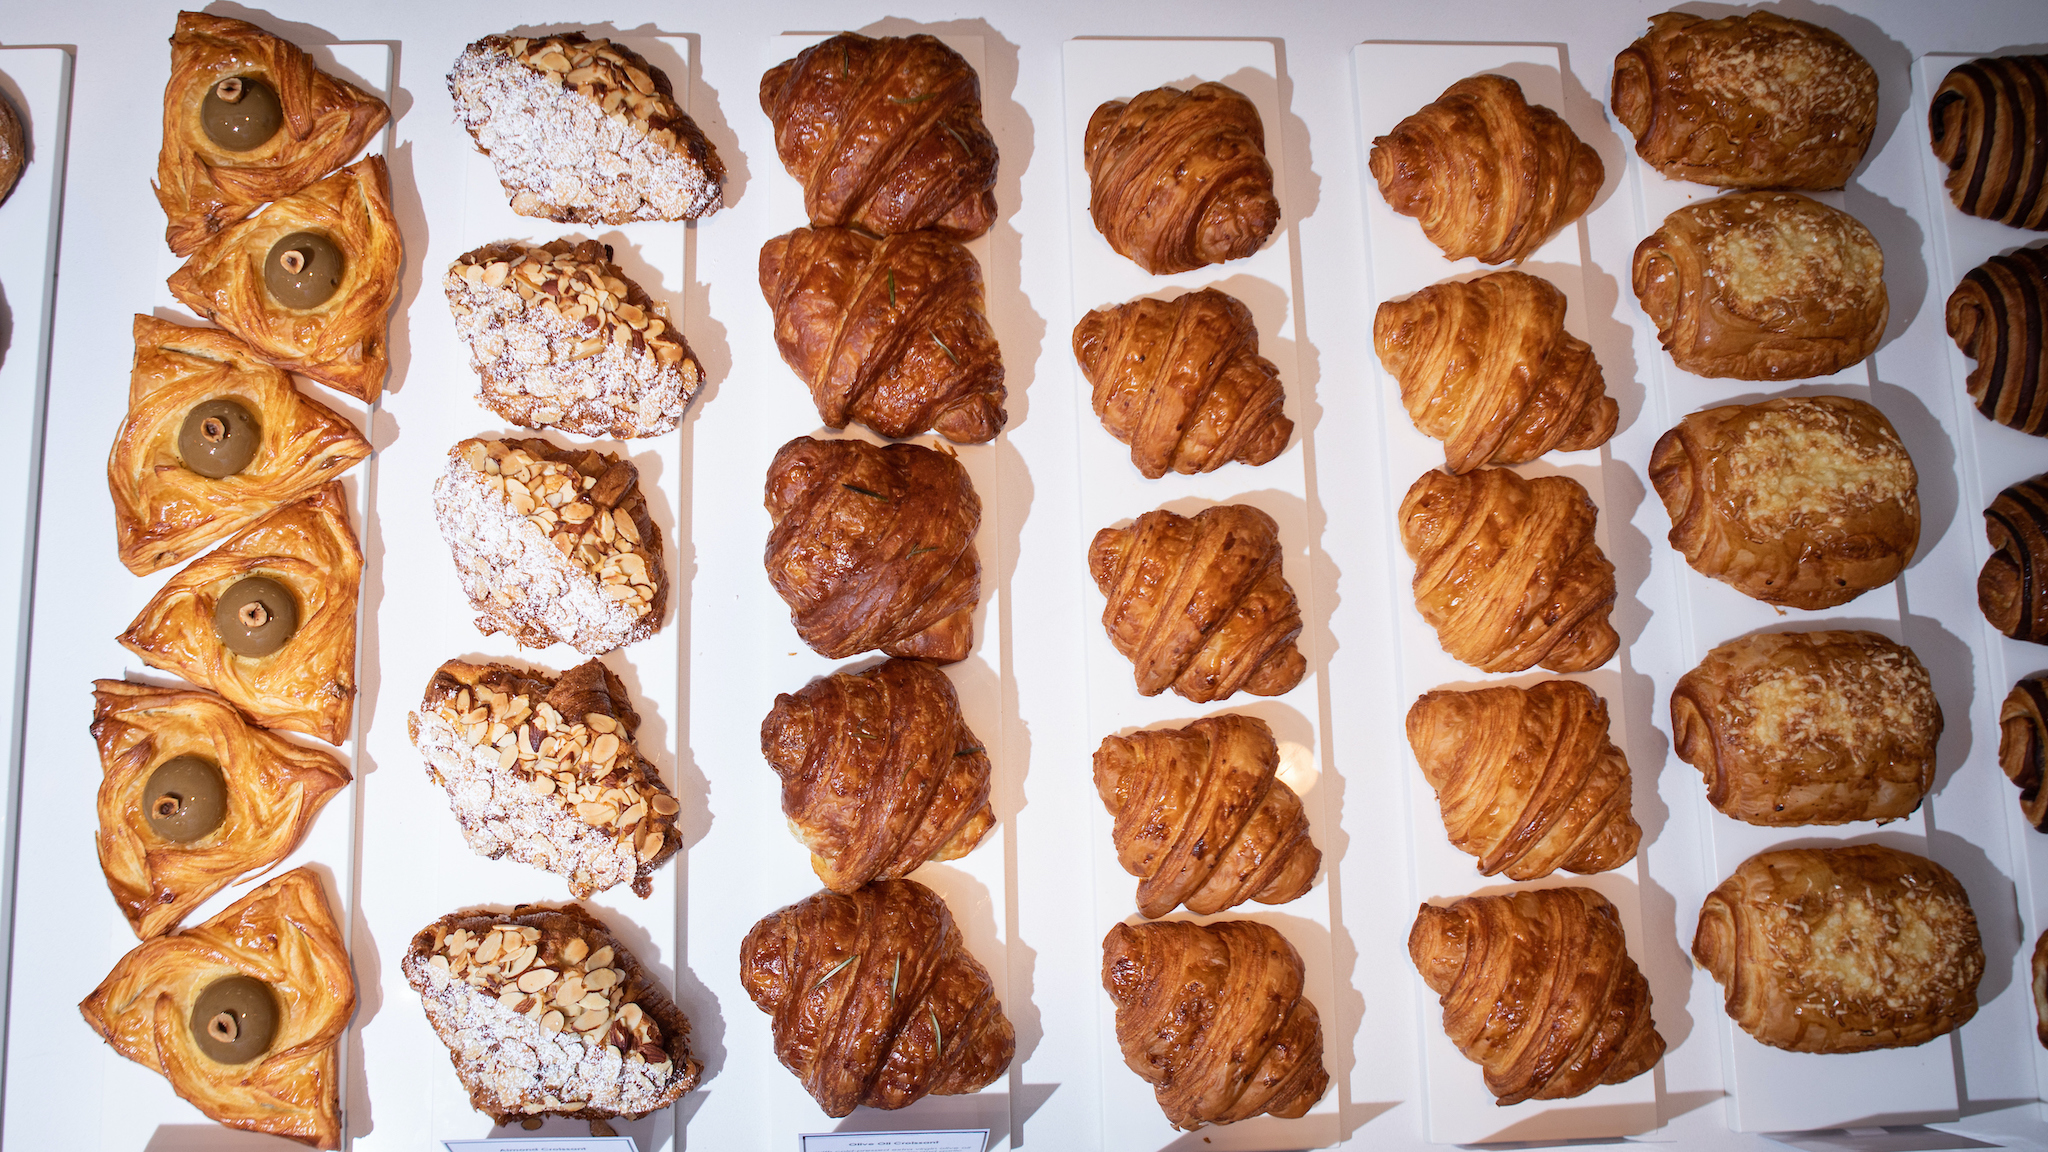 An overhead shot of a spread of croissants and other pastries lined up by type on white butcher paper.